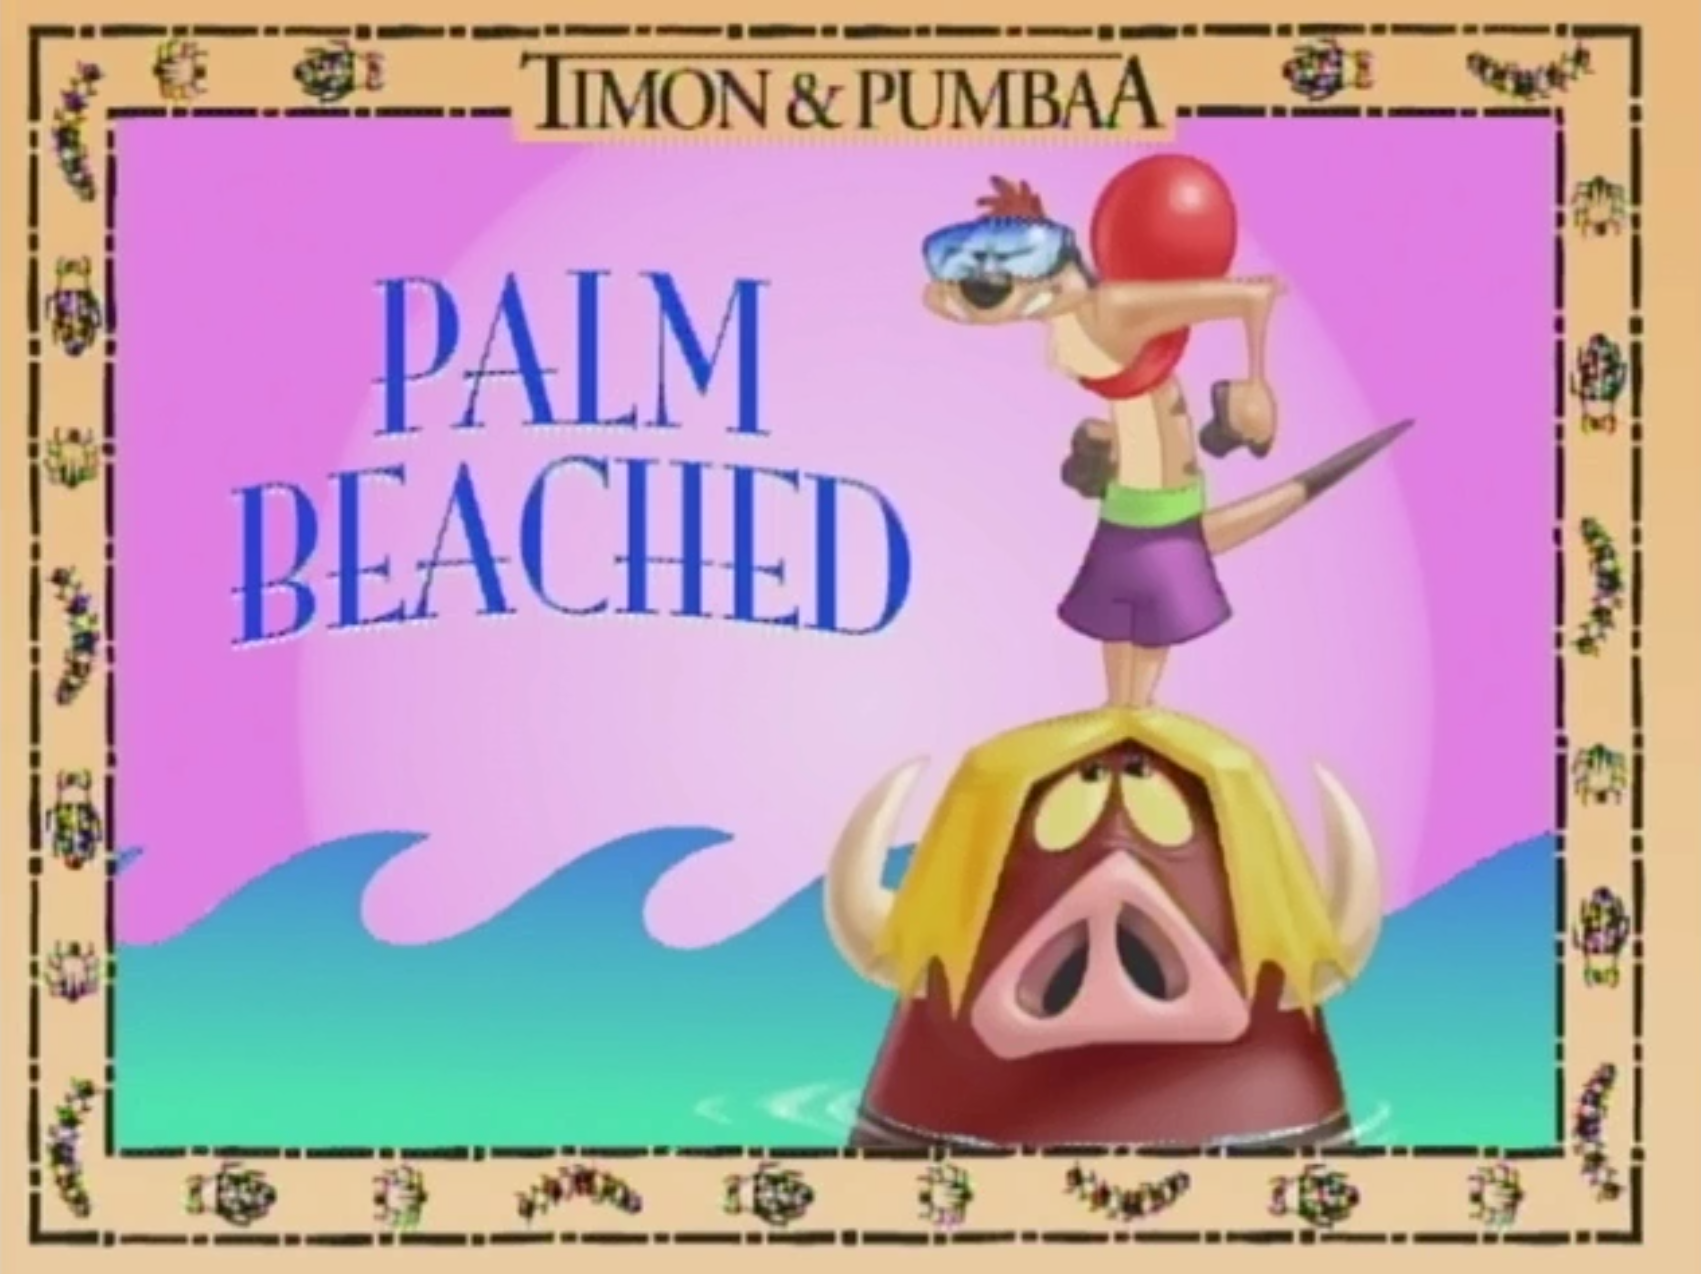 Palm Beached